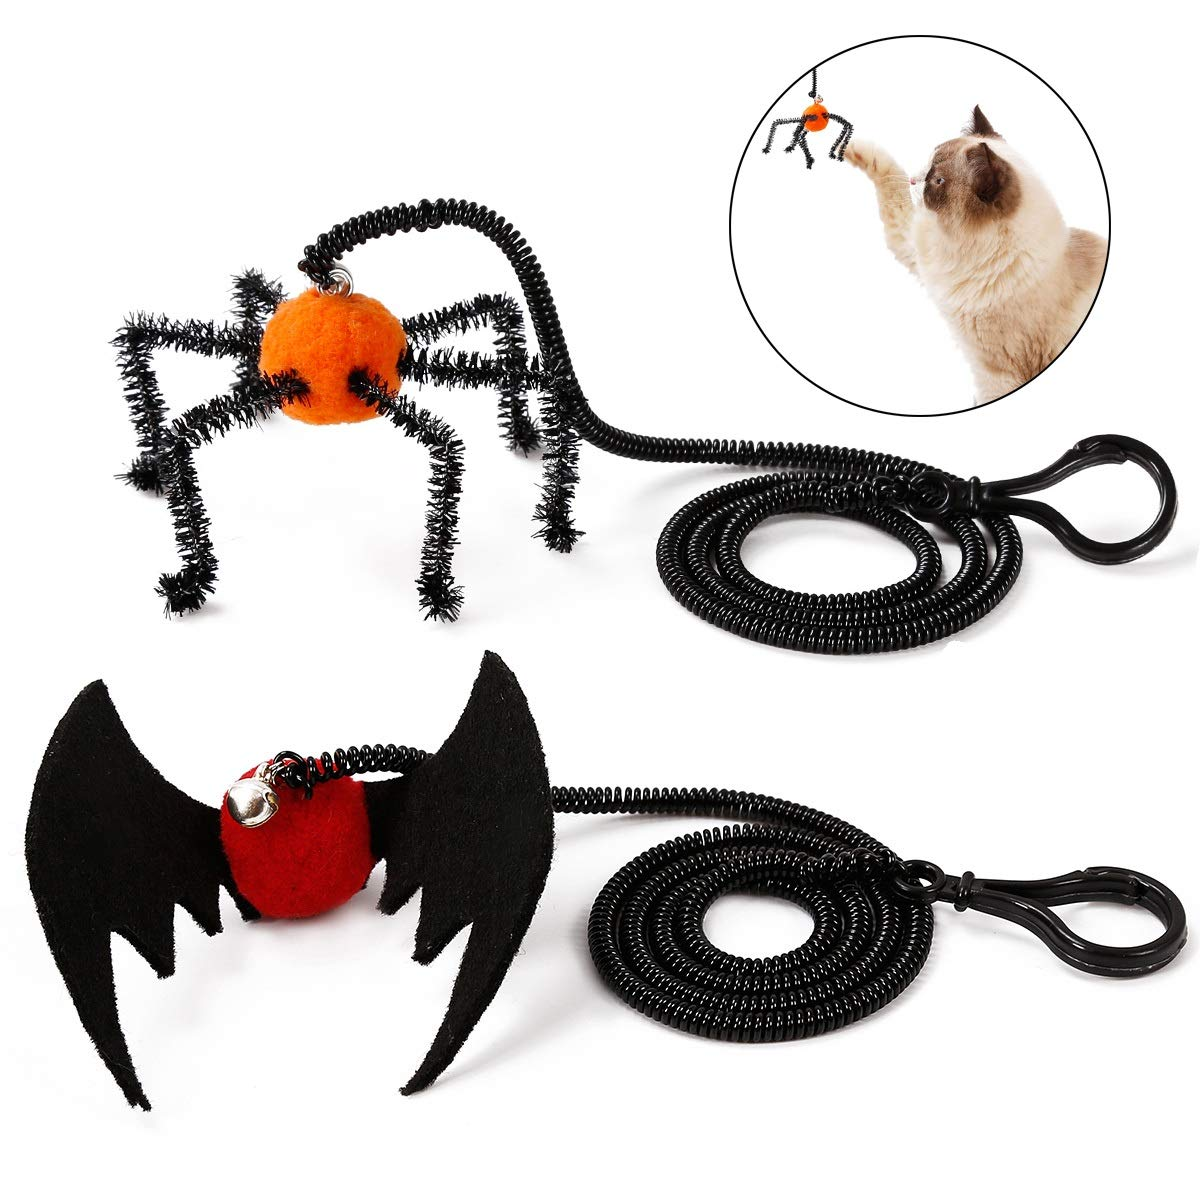 Pack of 2 Dora Bridal 2 Pcs Cat Toy Halloween Bat Spider Design Toy with Elastic String Plastic Finger Hook and Bell Interactive Cat Toy for Kitten and Puppy